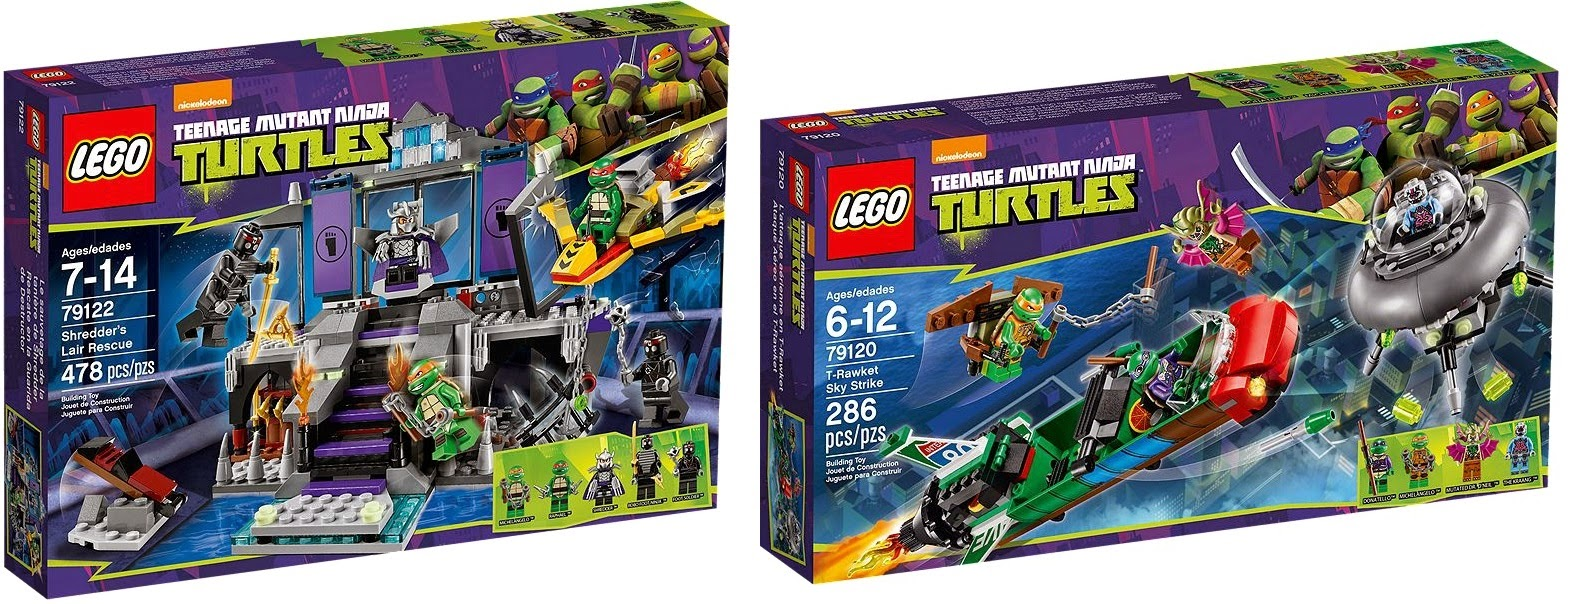 LEGO Teenage Mutant Ninja Turtle, Nickelodeon, LEGO 2014